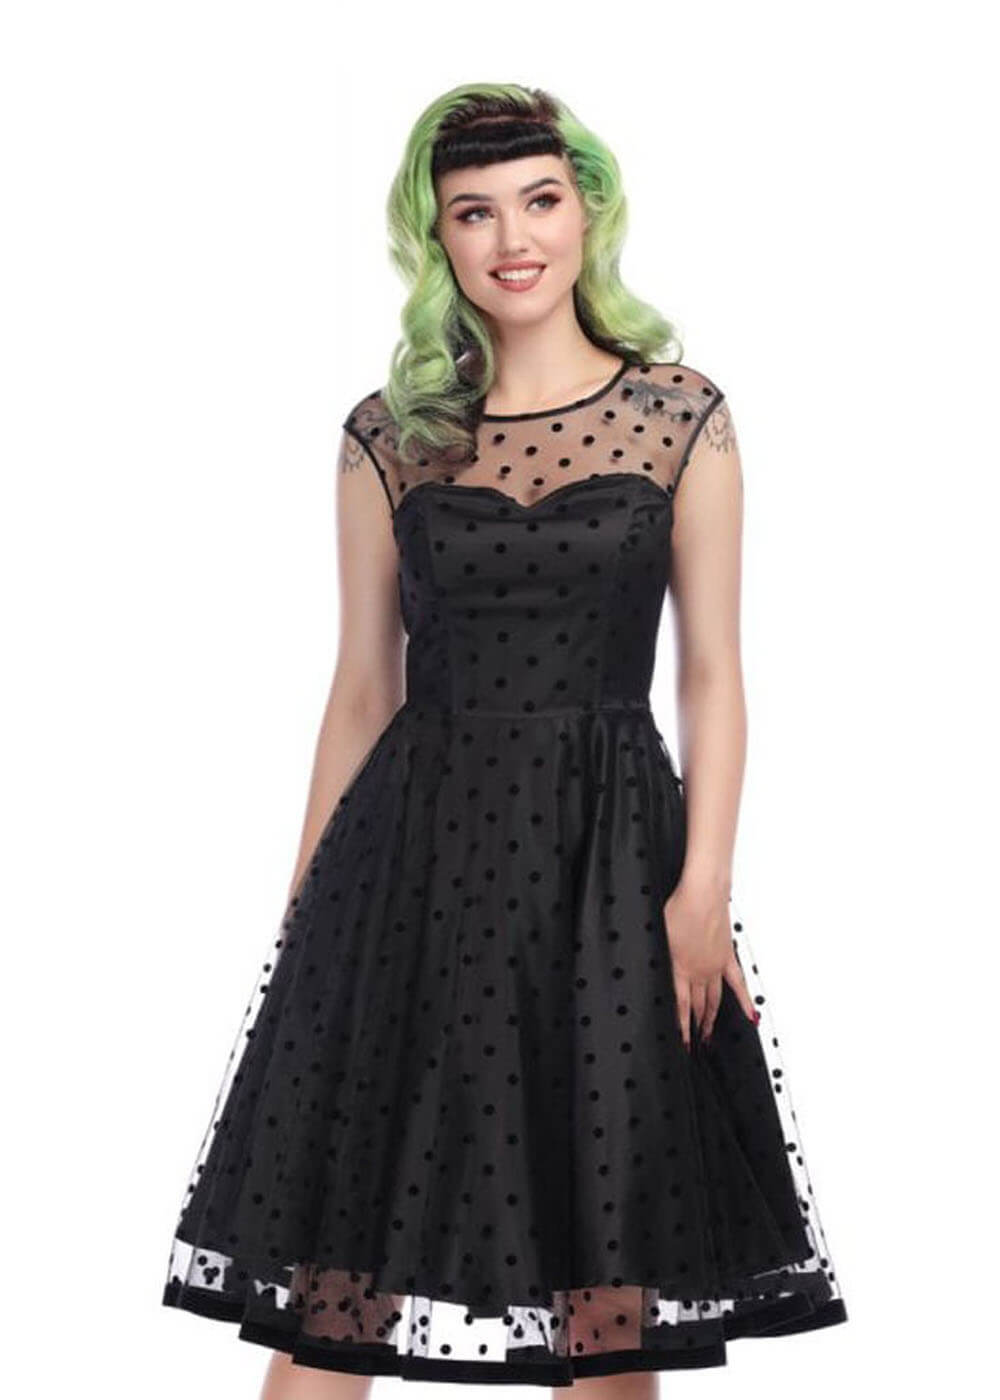 bbe8d64daaac7 Collectif Dresses, Skirts and Clothing ♥ Shop now at Succubus